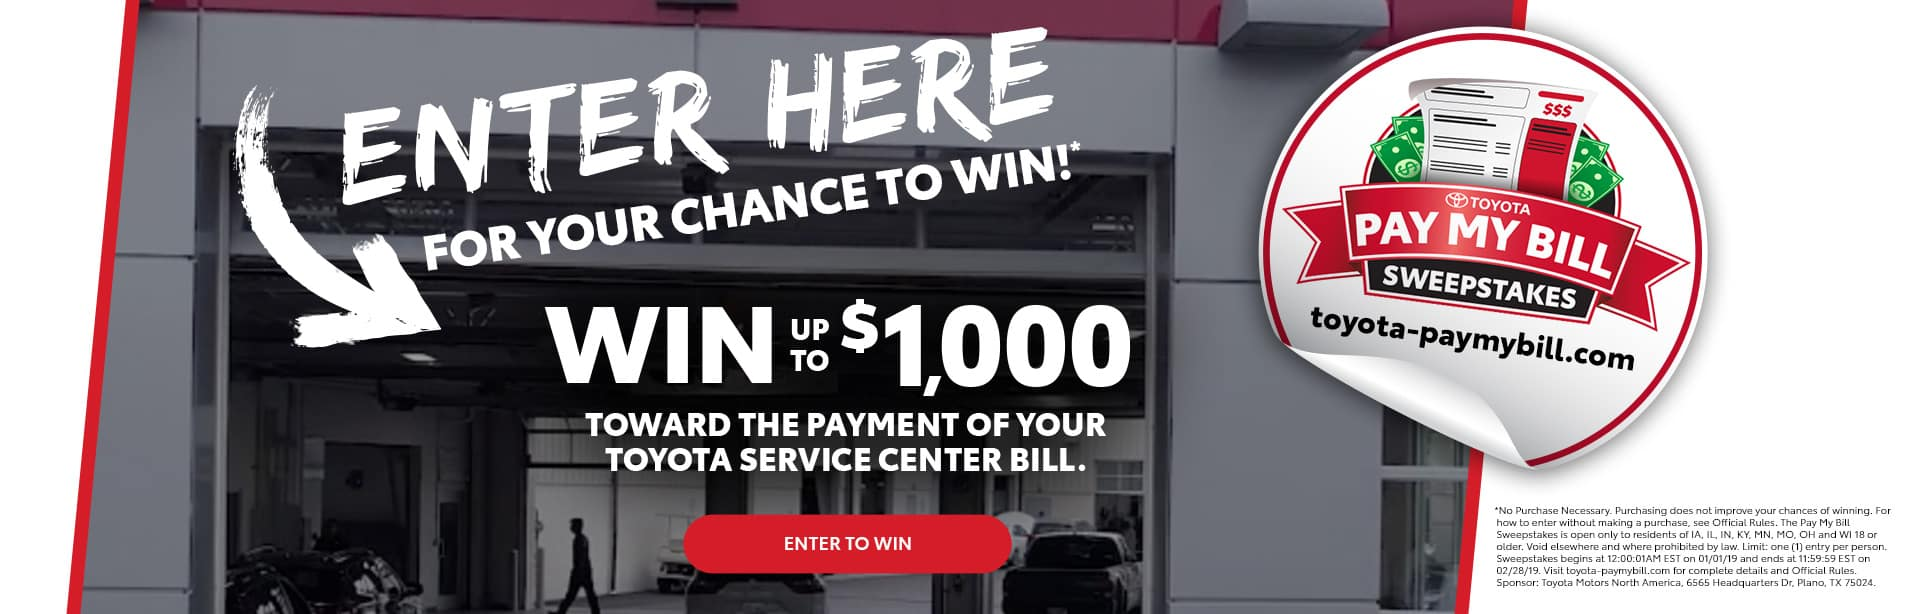 Toyota Pay My Bills